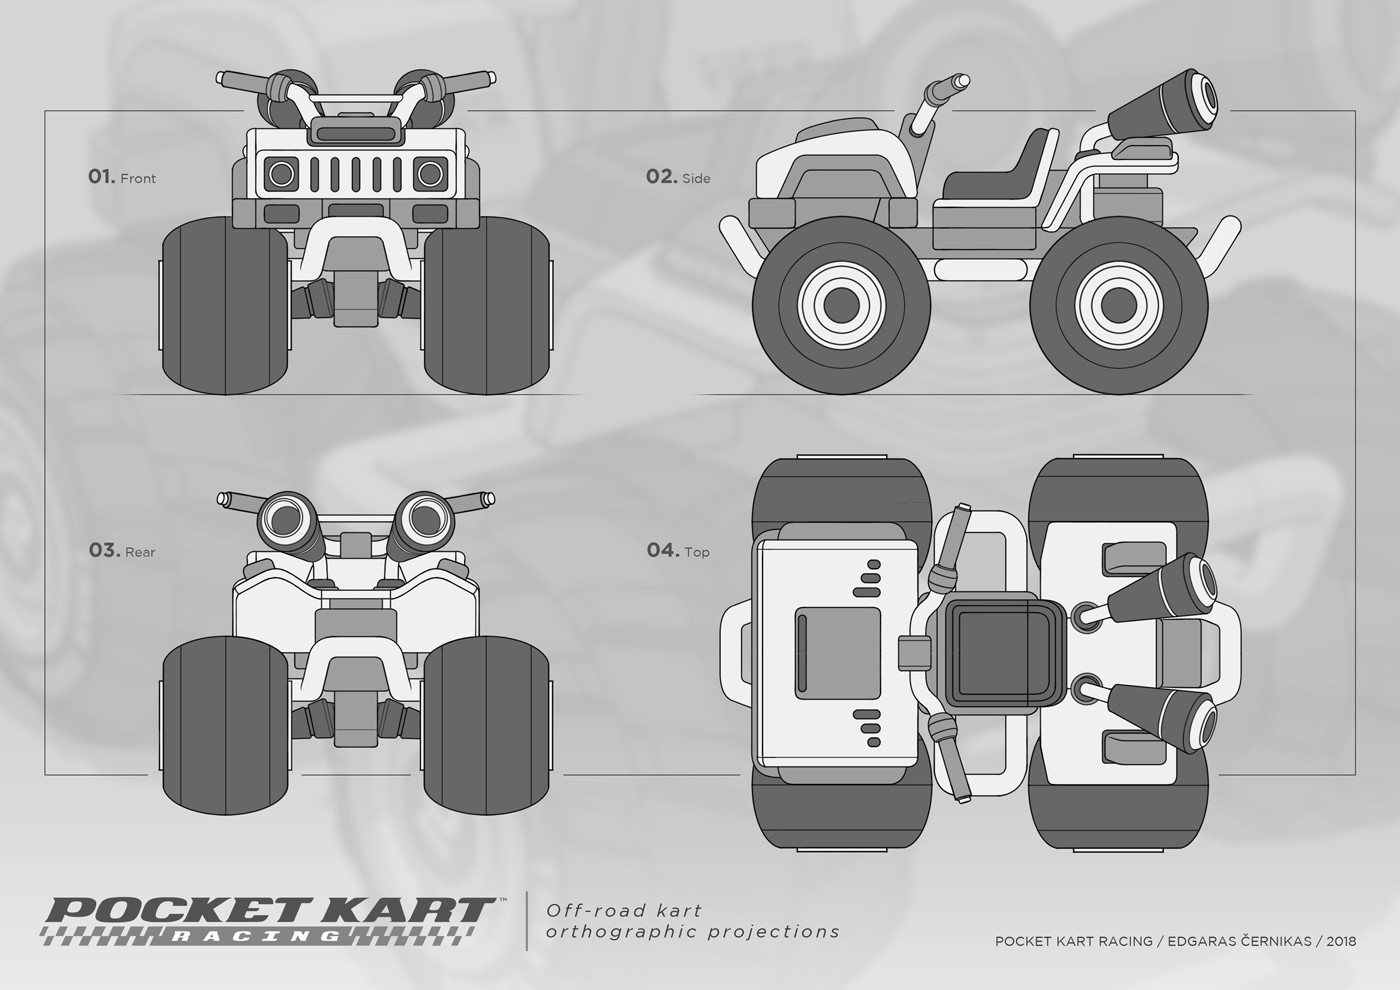 Edgaras cernikas pocket kart off rox kart orthographic projections 1400x990